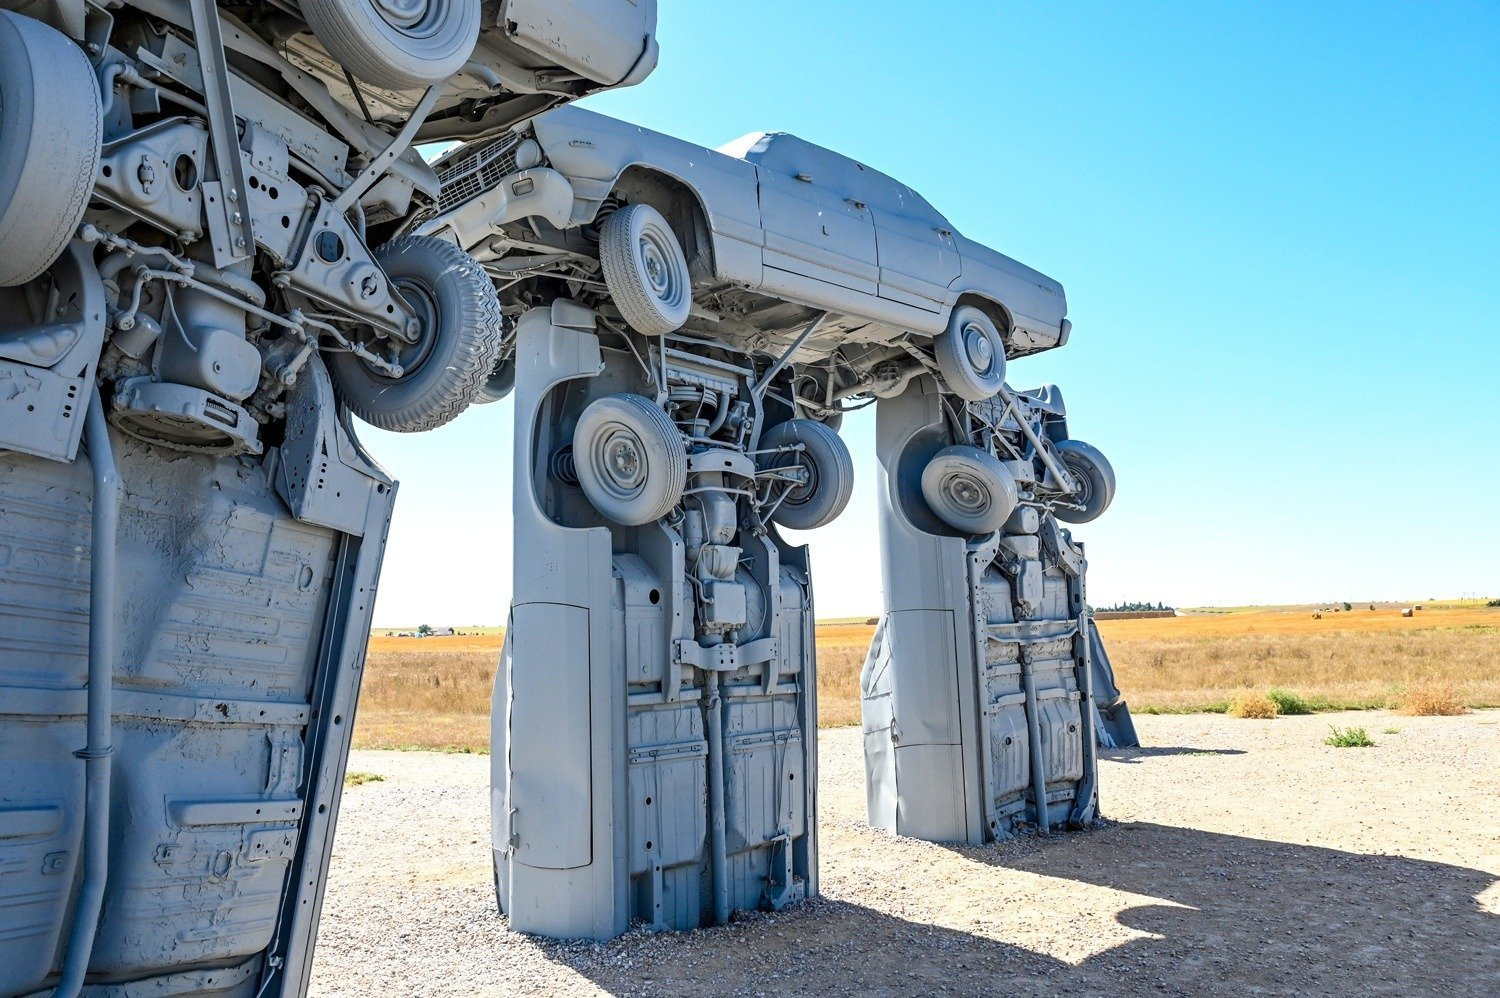 roadside attraction carhenge, nebraska photo series 2 of 3 nature photo gift pro by amsw photography